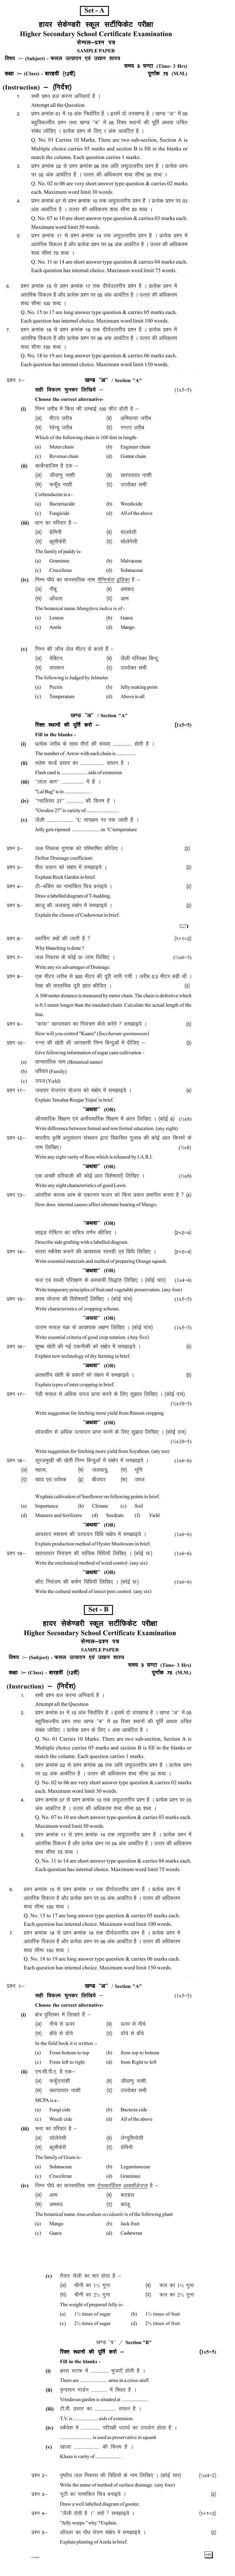 Chattisgarh Board Class 12 Agriculture and Farming science (Fasal utpadan evam Udyan shastra) Sample Paper